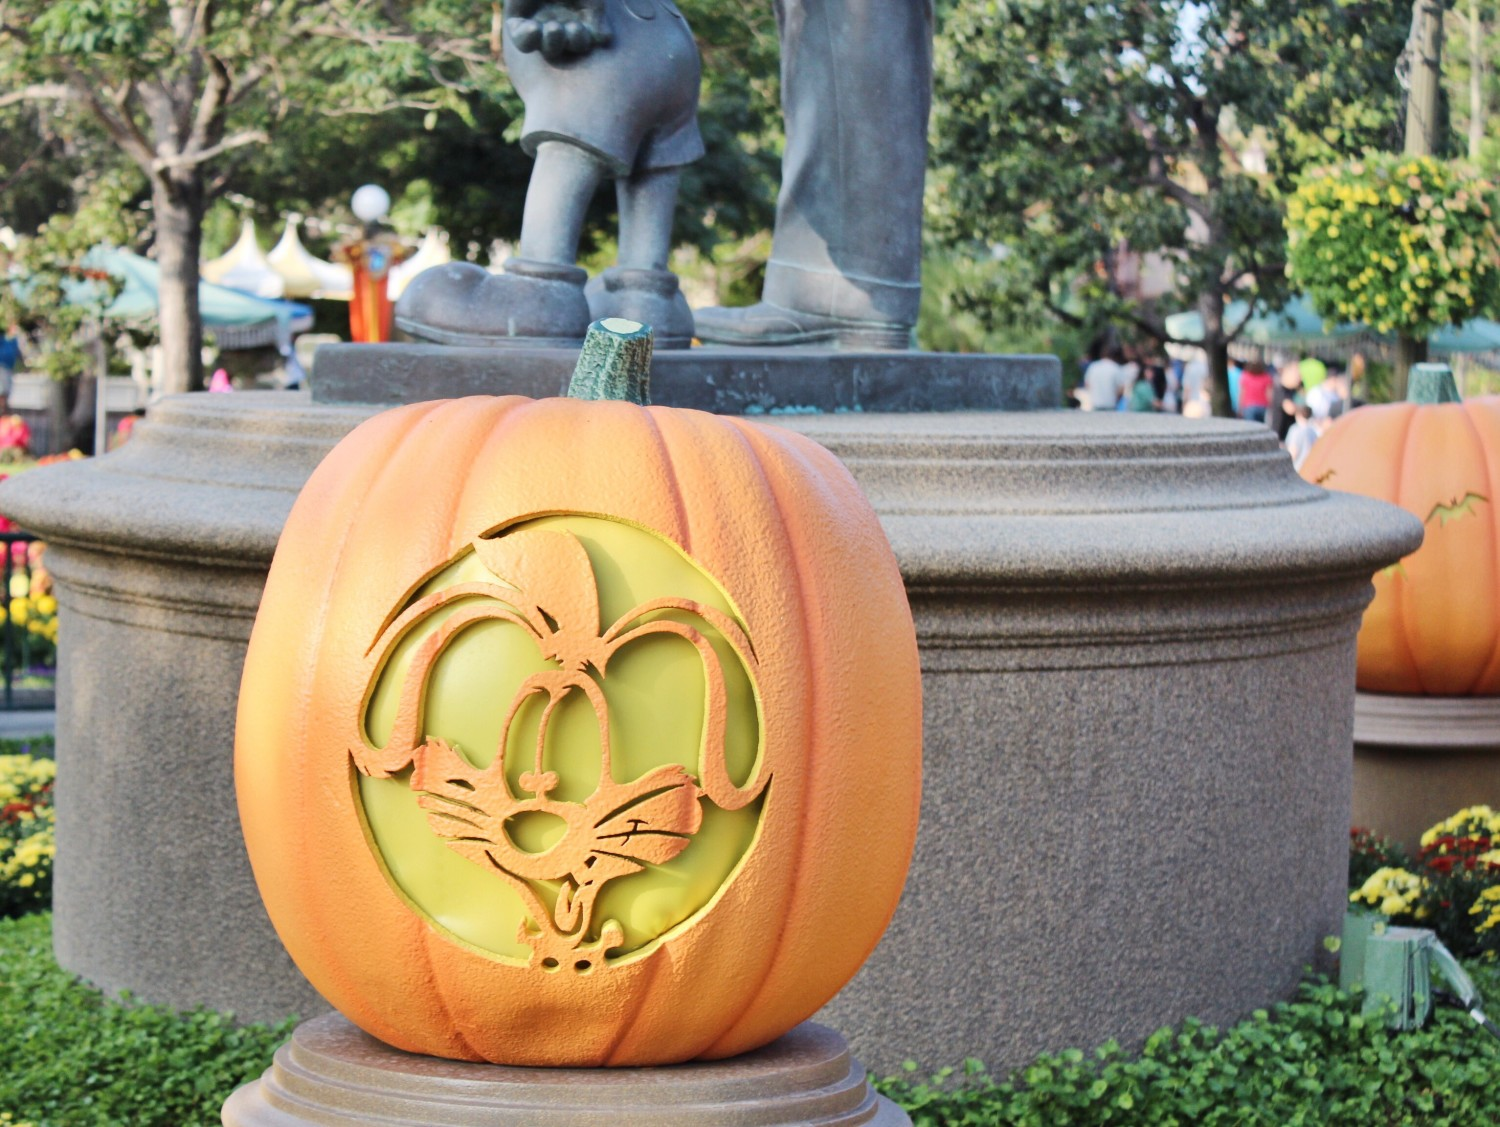 Disneyland Roger Rabbit Pumpkin